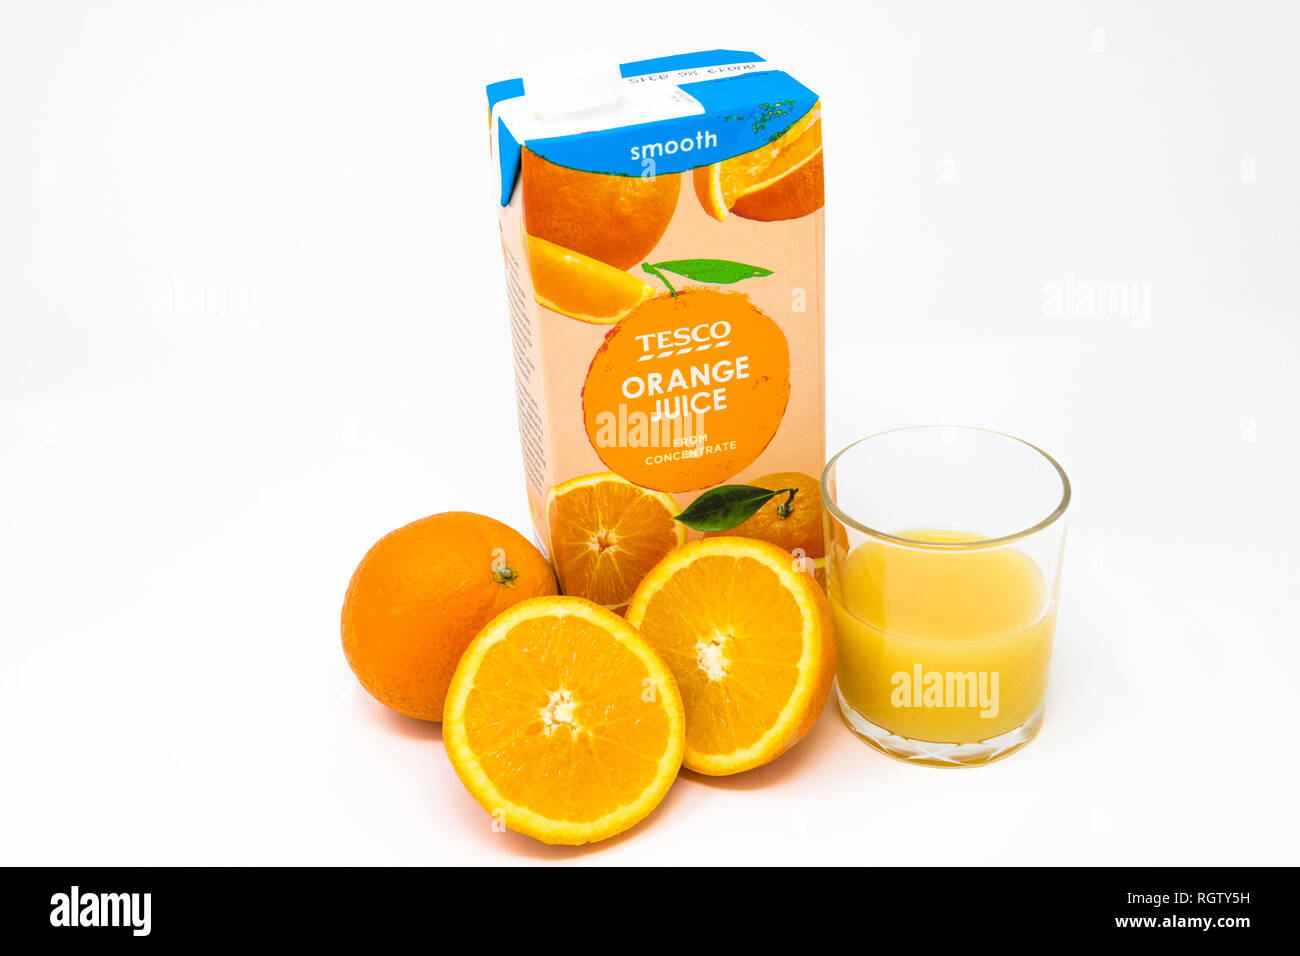 Carton of Tesco's orange juice concentrate with freshly cut oranges and glass half full. - Stock Image